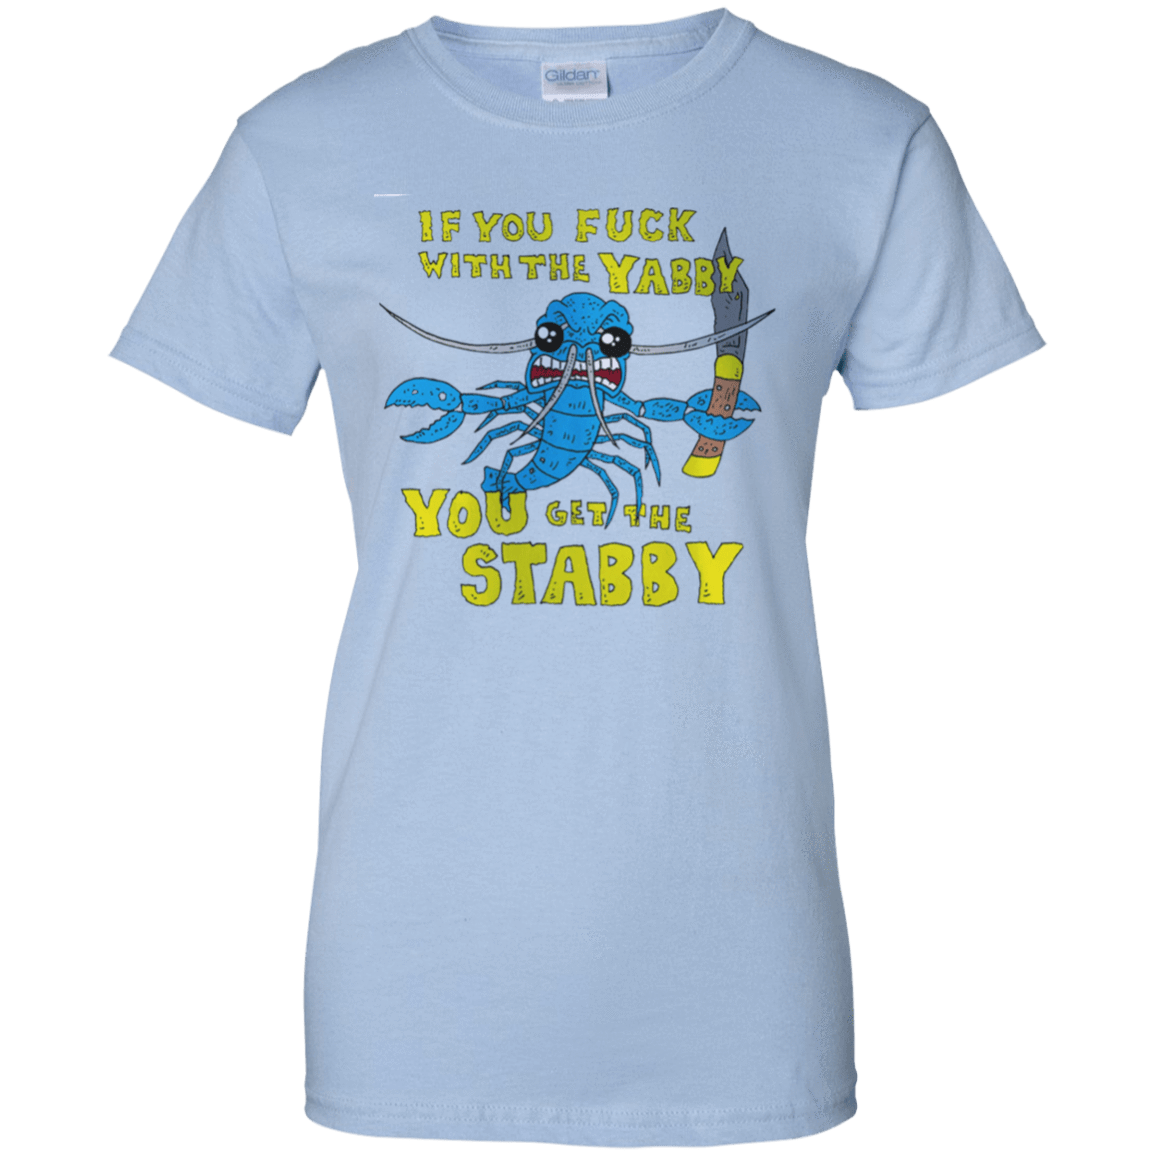 If You Fuck With The Yabby You Get The Stabby 939-9257-72983912-44716 - Tee Ript